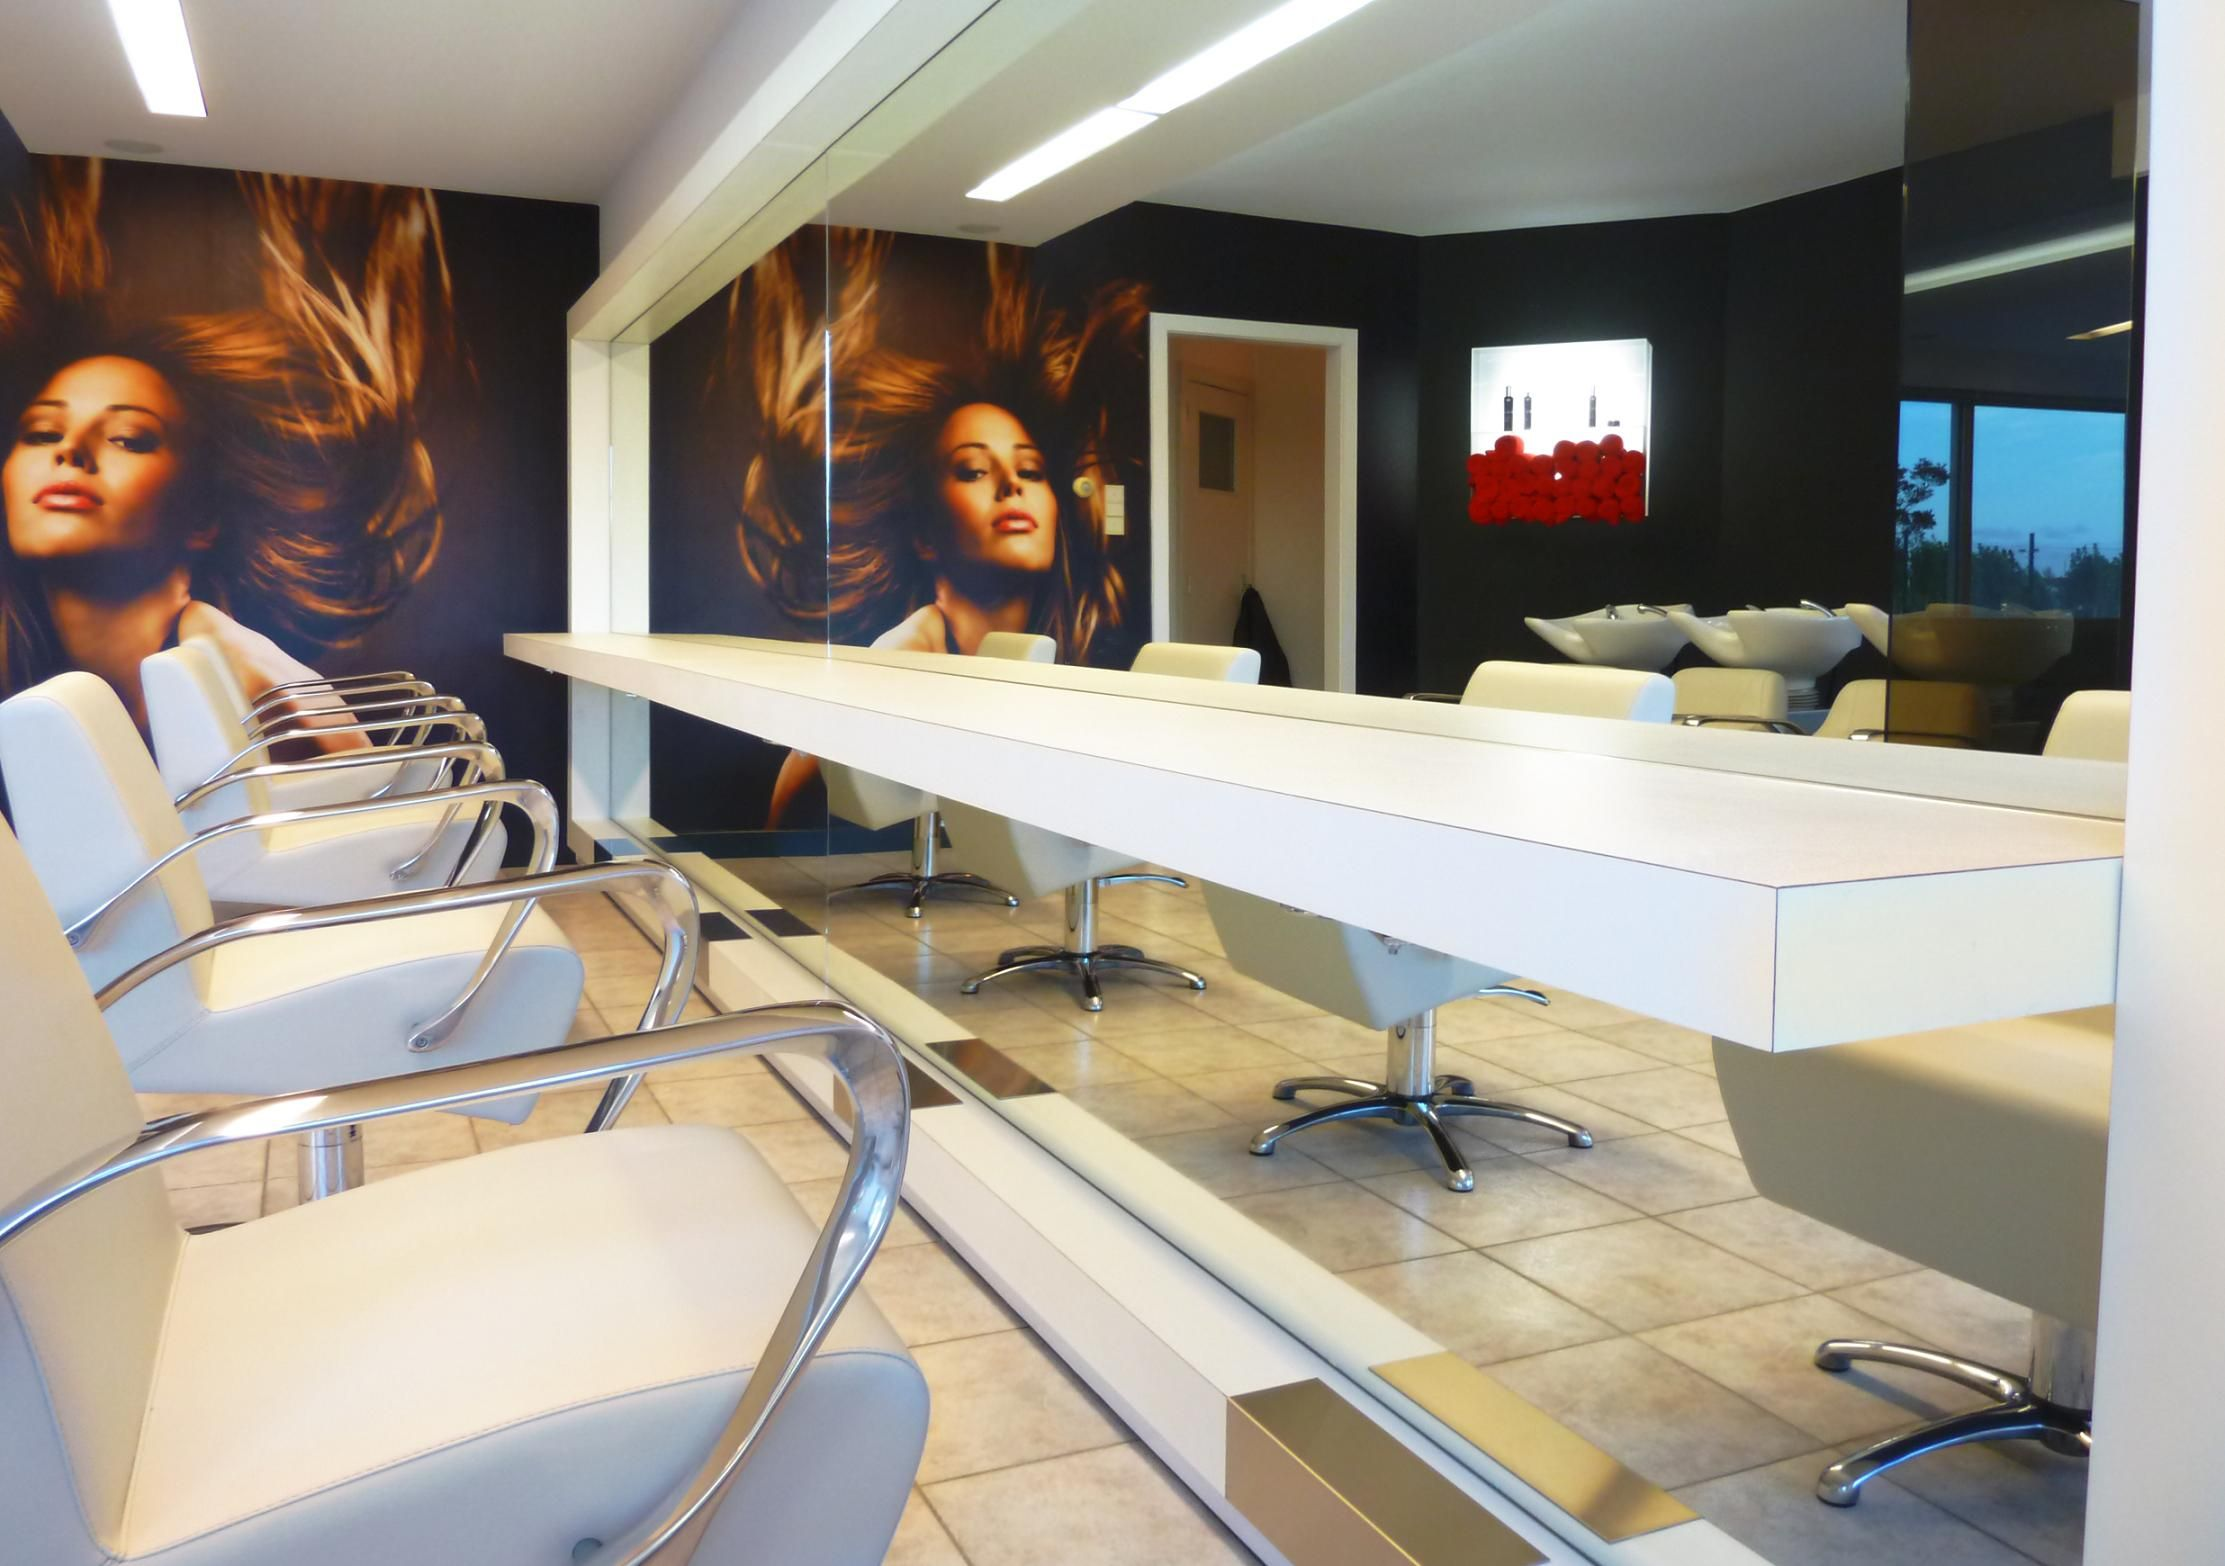 1000 Images About Beauty Salon Design On Pinterest Salon